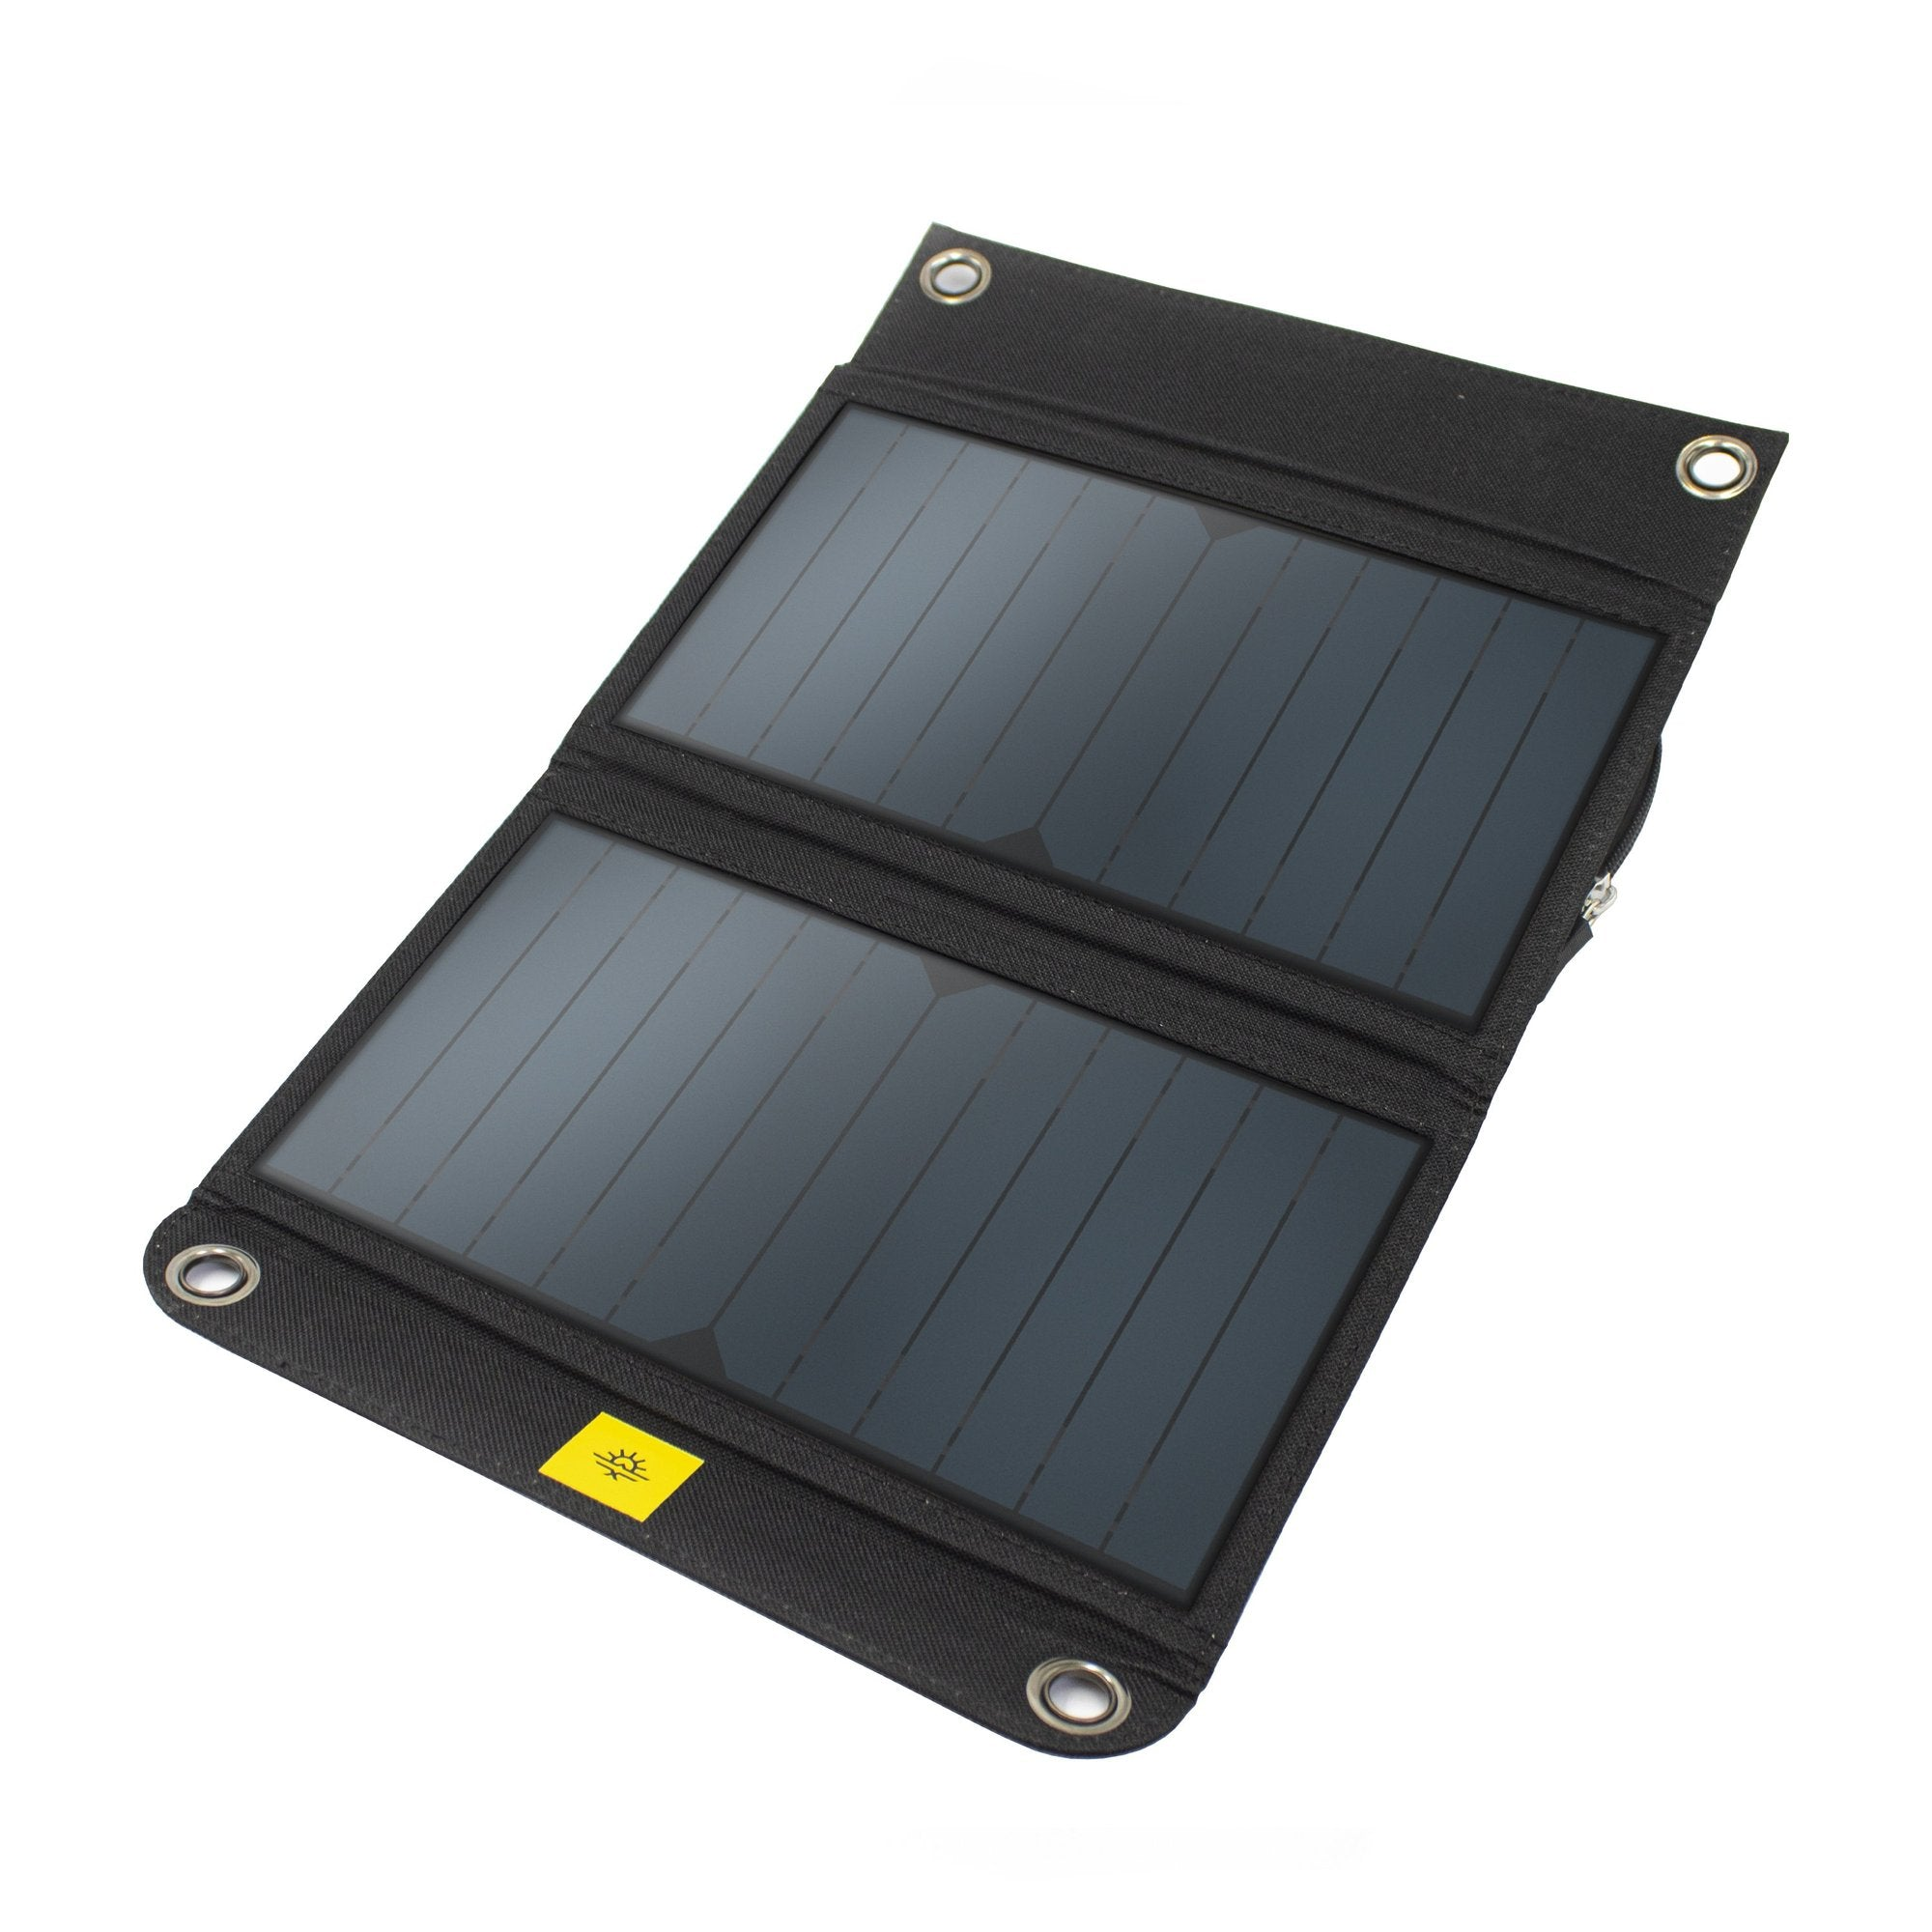 Kestrel 40 -  Portable Solar Charger